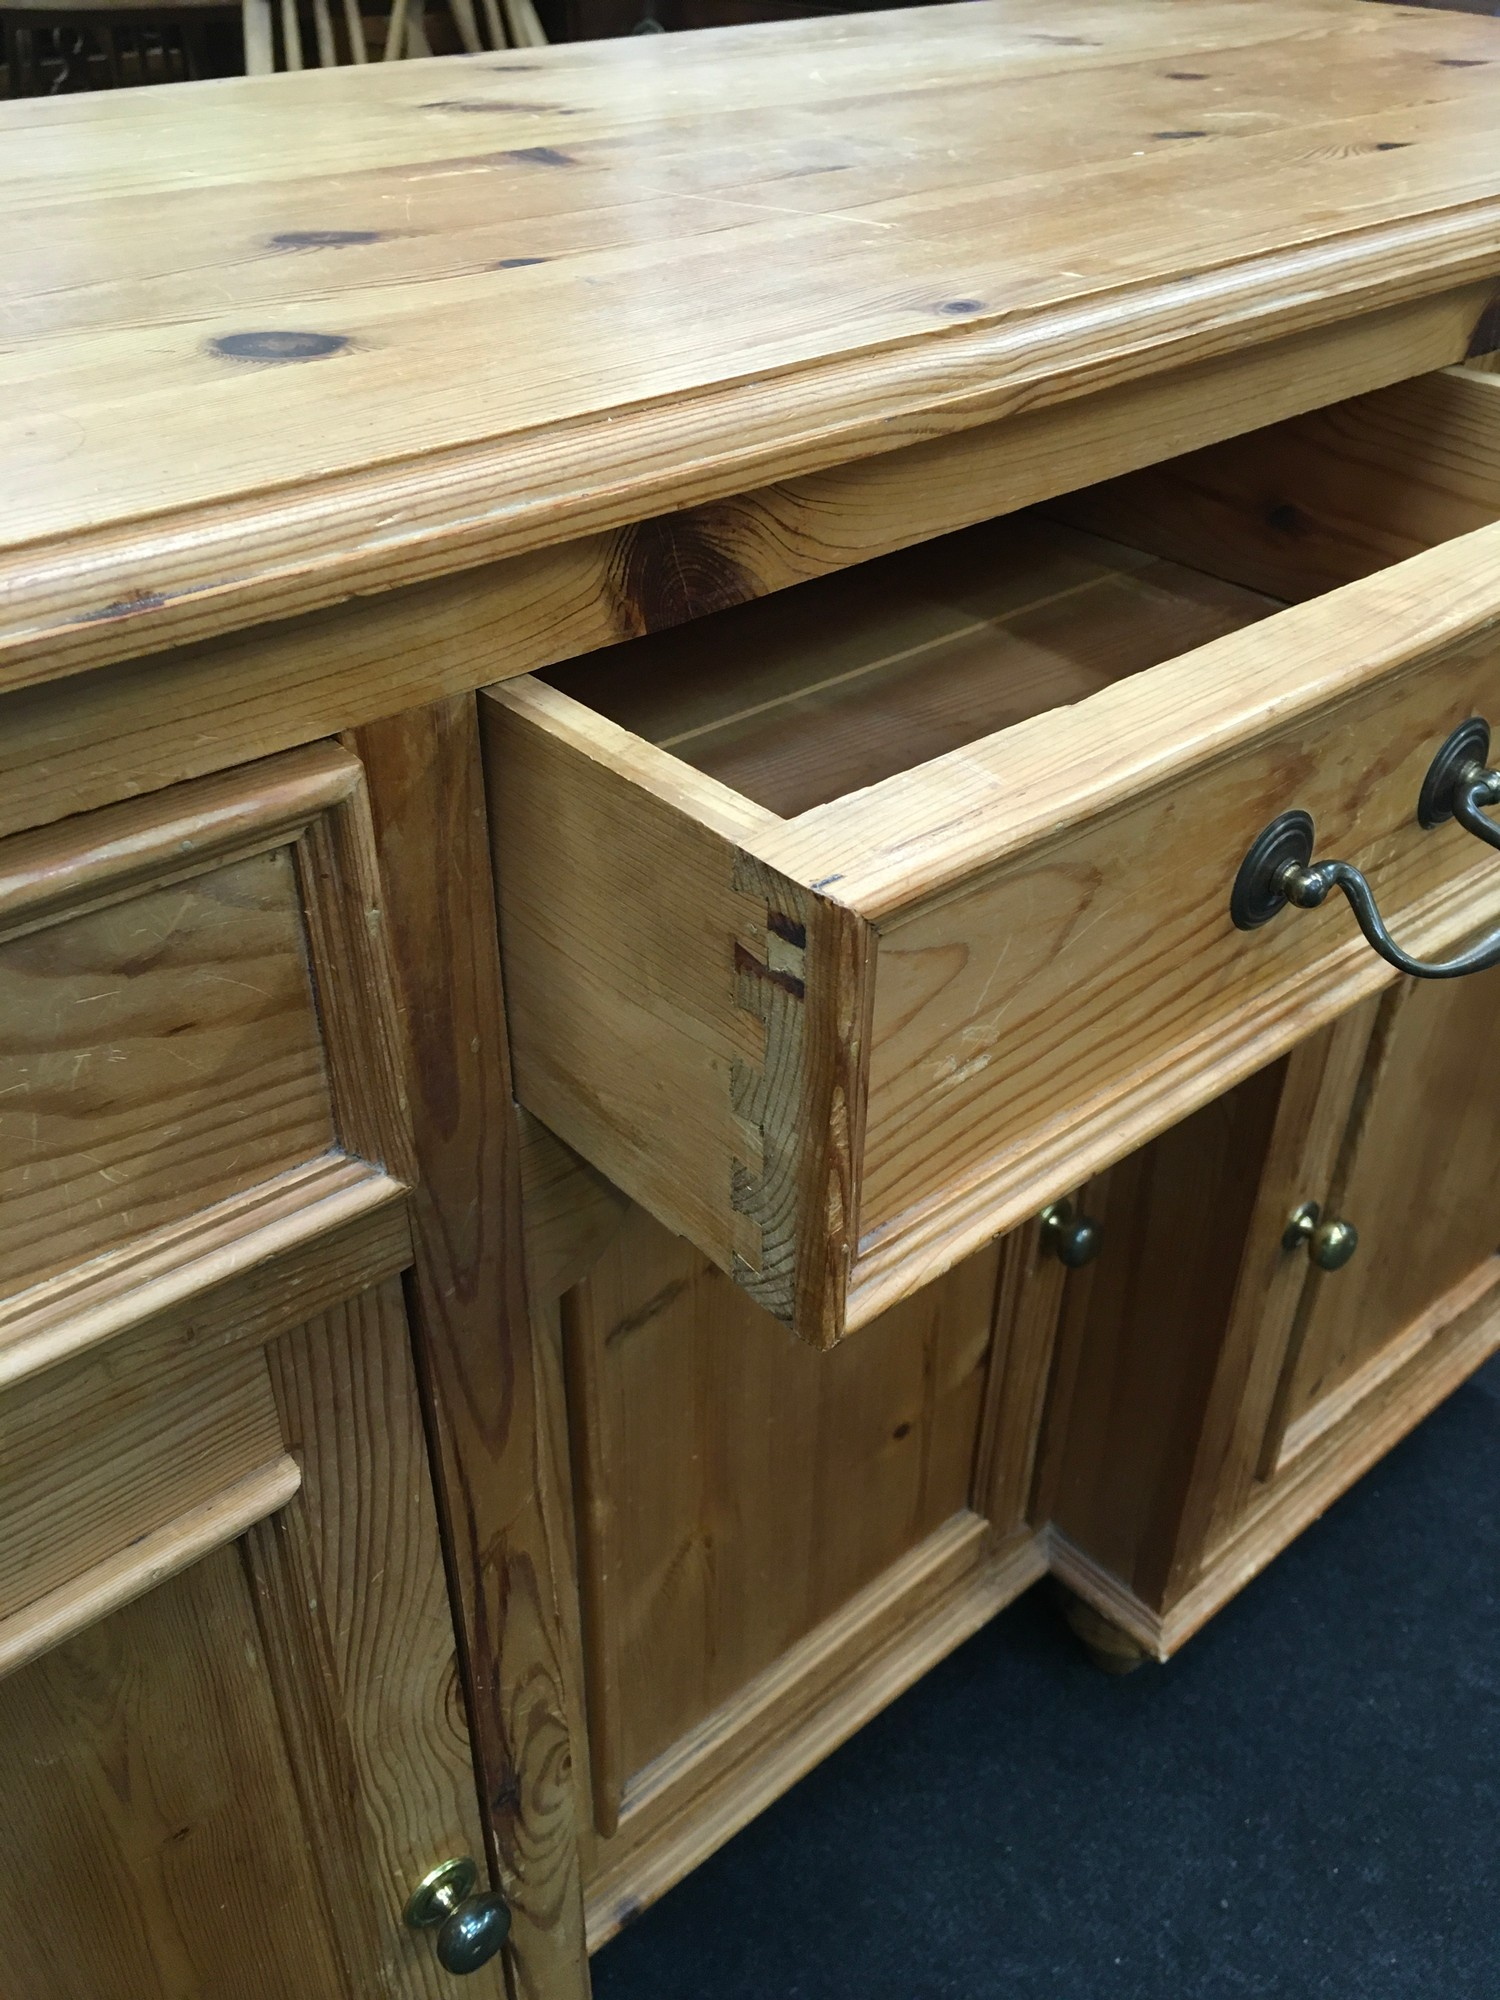 Pine 3 draw over 3 door side board with brass handles and turned feet 85x125x45cm - Image 3 of 5